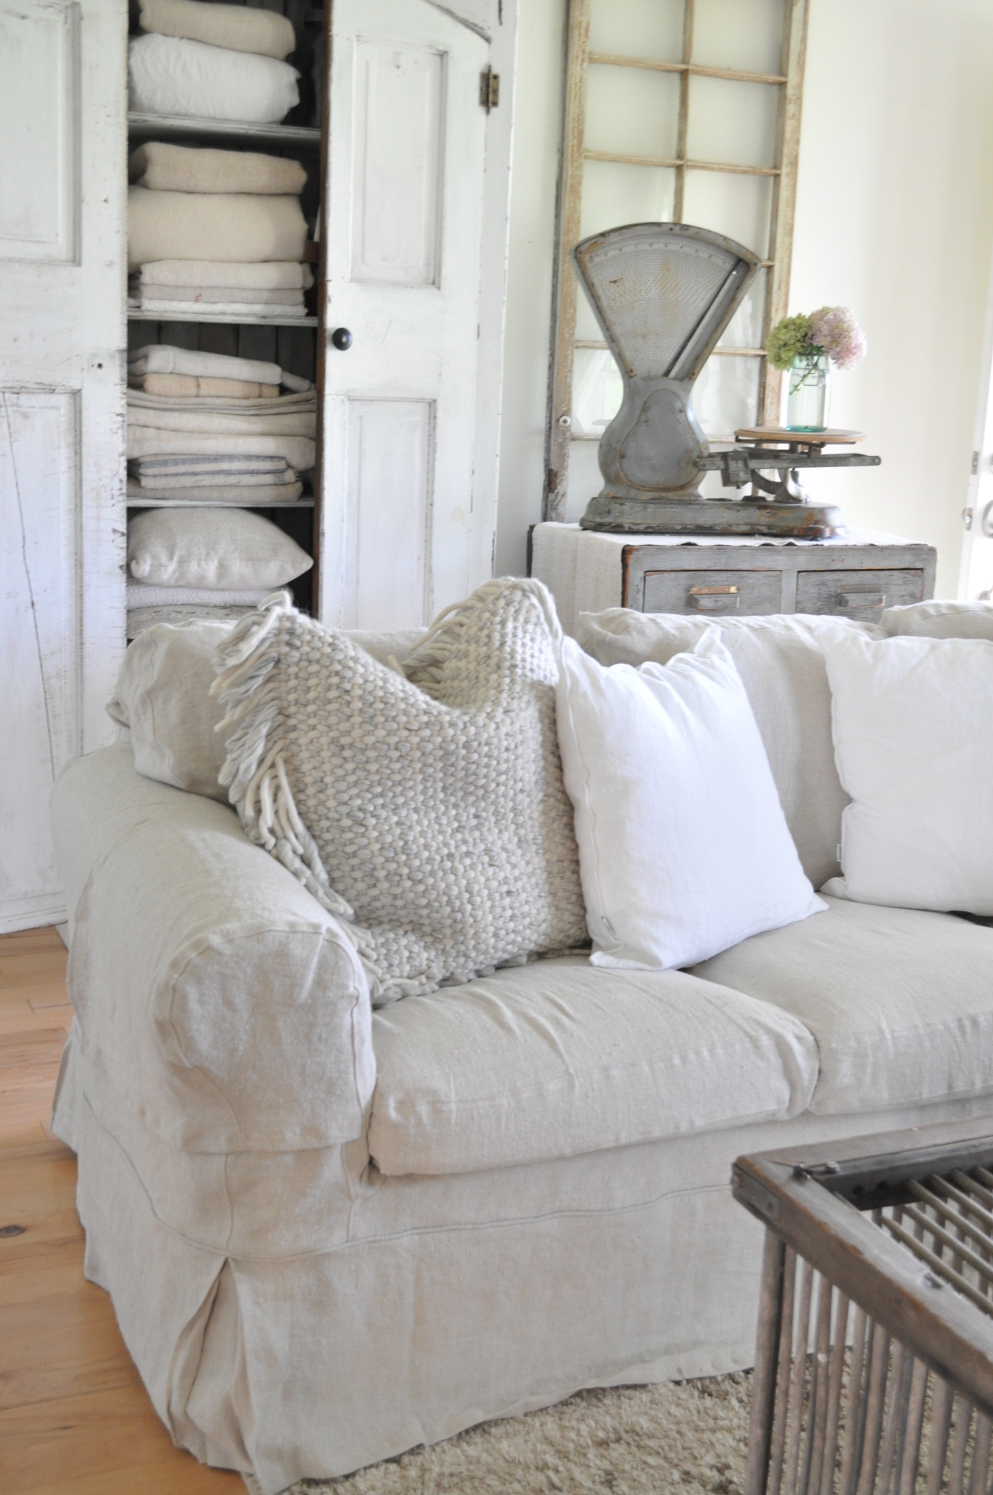 BEMZ DESIGNS Is A Swedish Based Company That Grew From An Idea Sparked By  The Owner, Lesley Pennington. They Make Custom Slipcovers, For Sofas Or  Chairs, ...